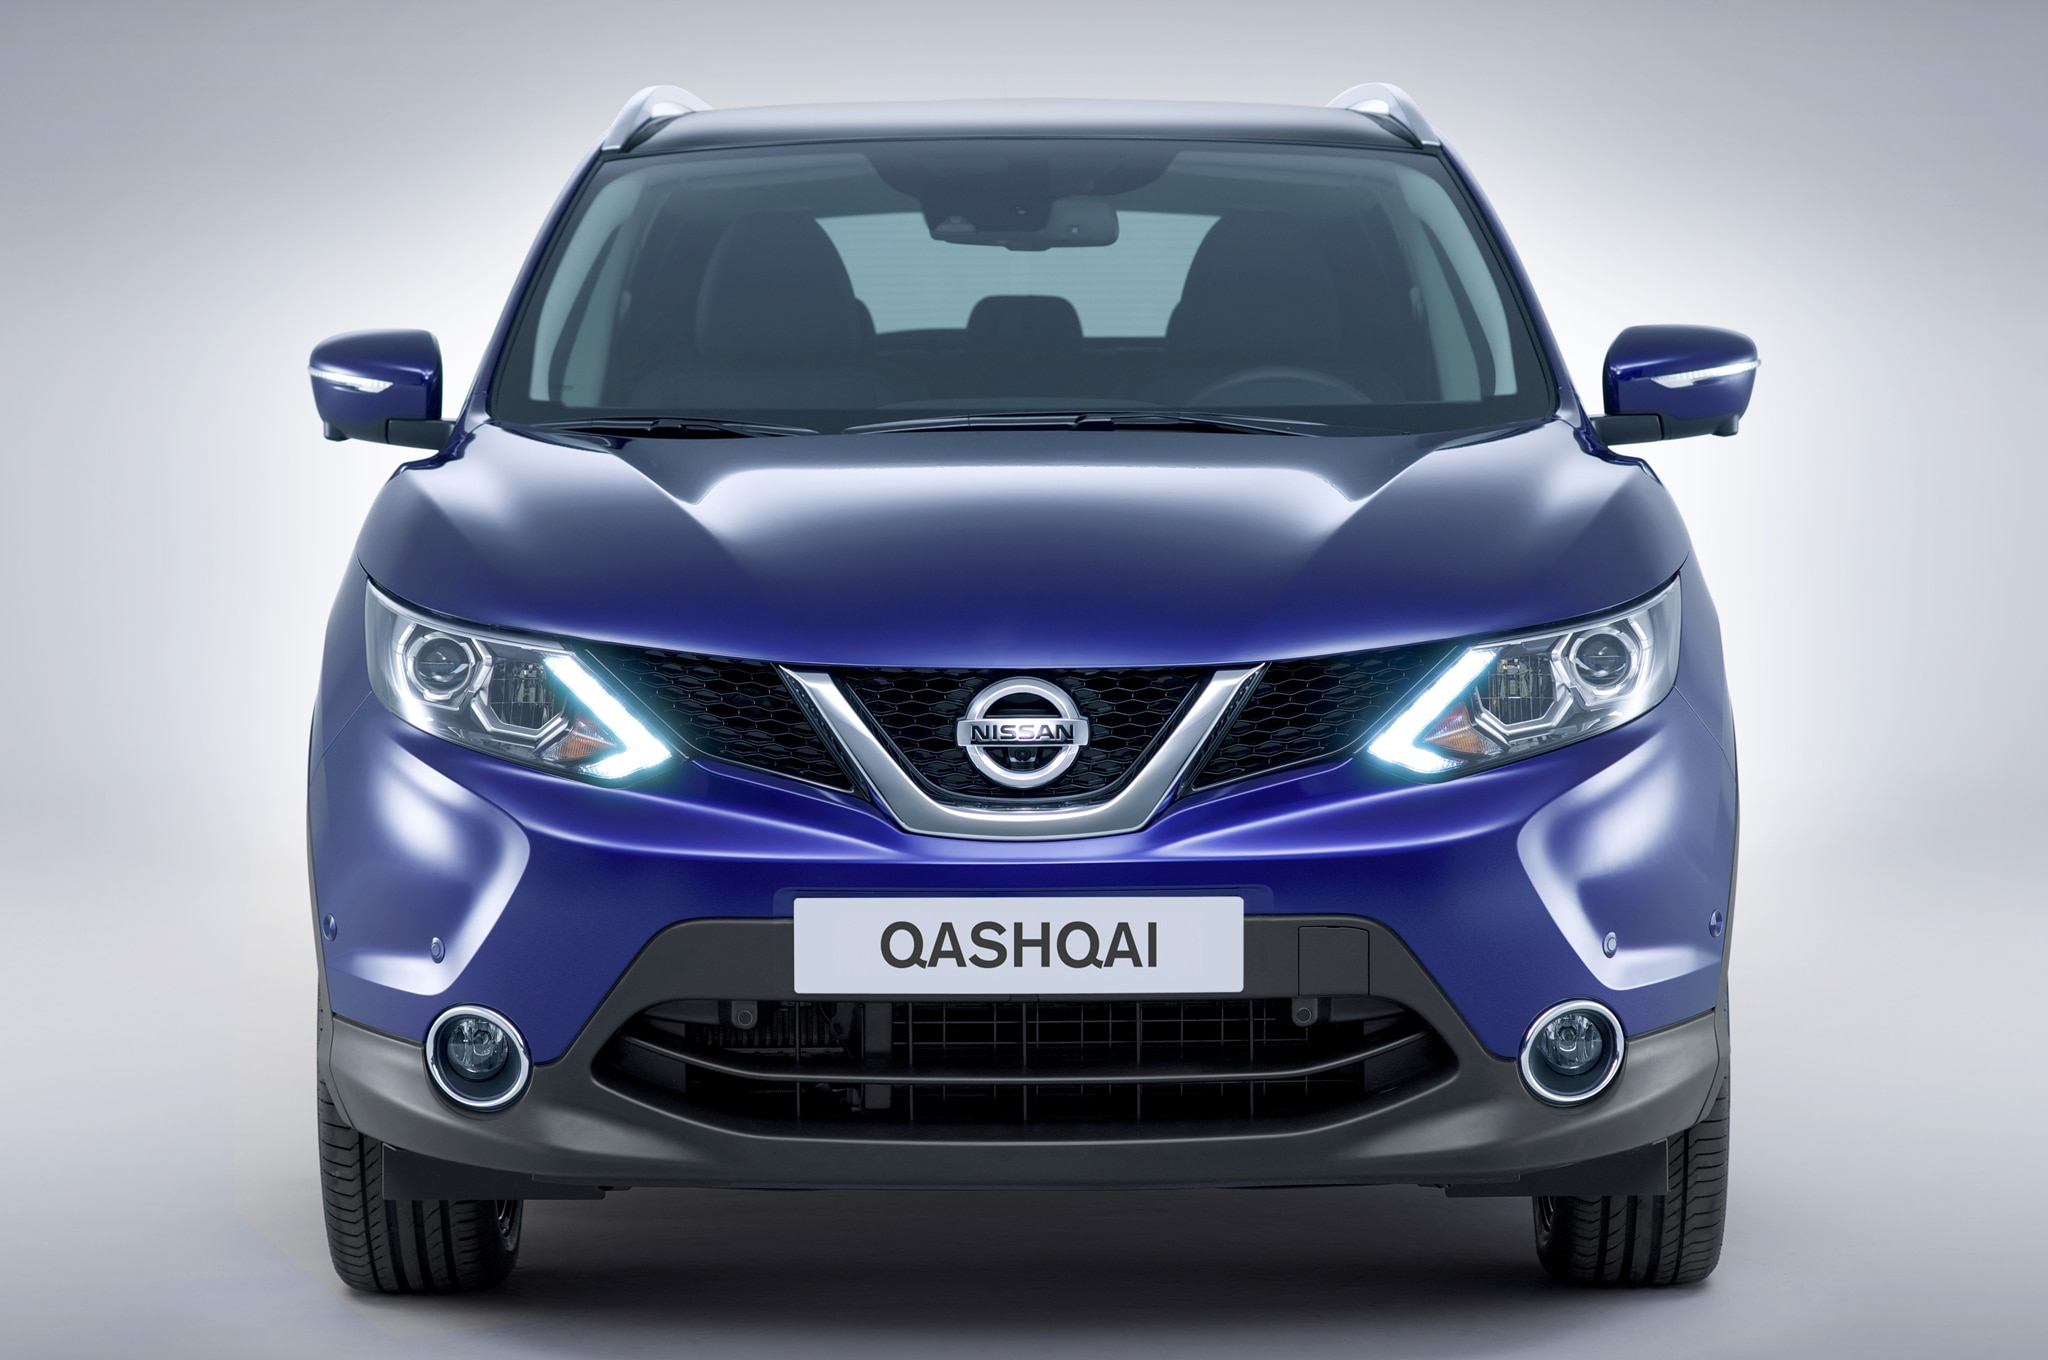 2014 nissan qashqai revealed for european market. Black Bedroom Furniture Sets. Home Design Ideas